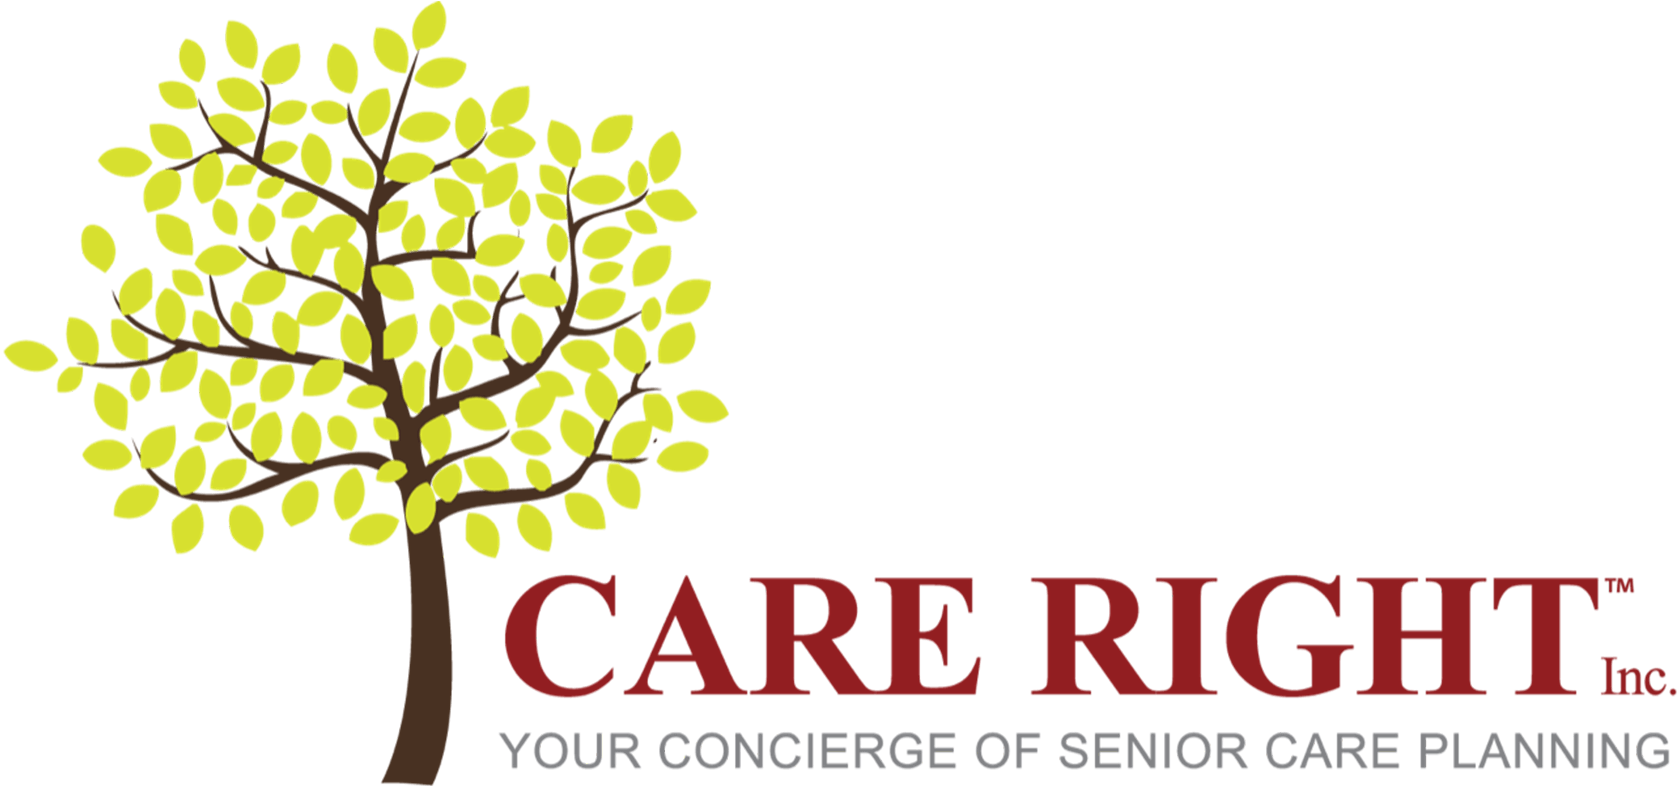 Care Right, Inc.